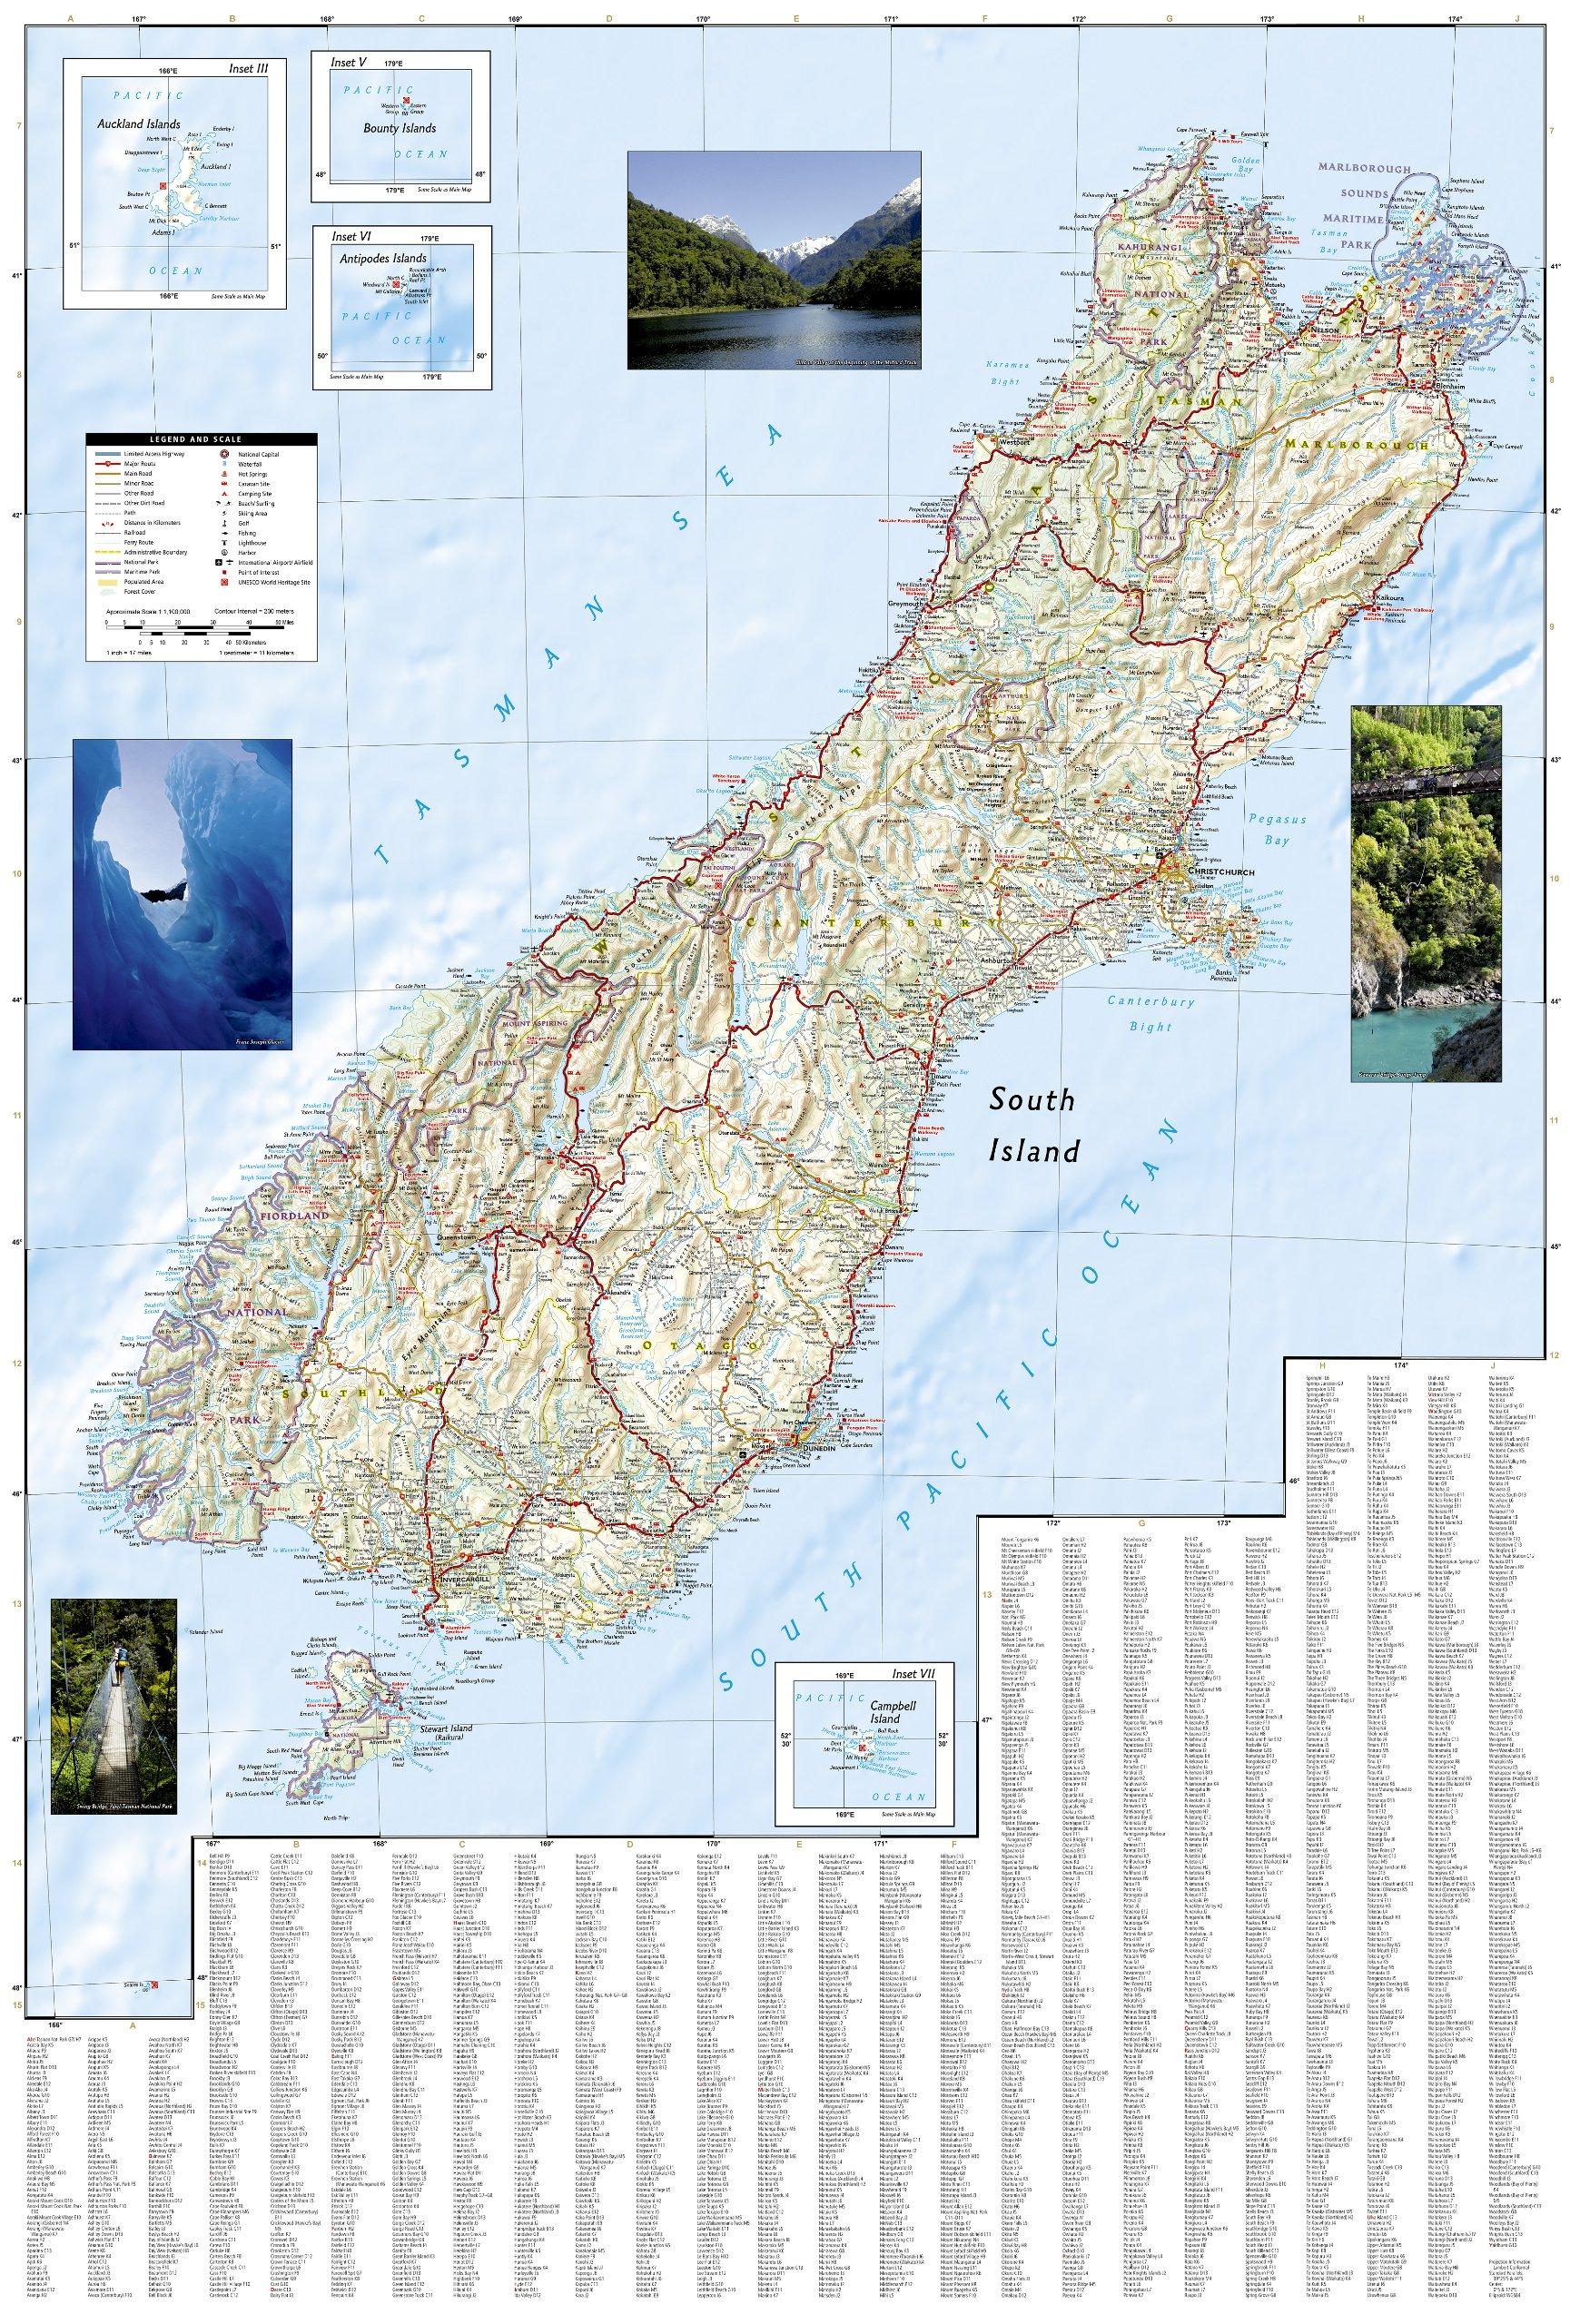 New Zealand National Geographic Adventure Map National – New Zealand Tourist Attractions Map